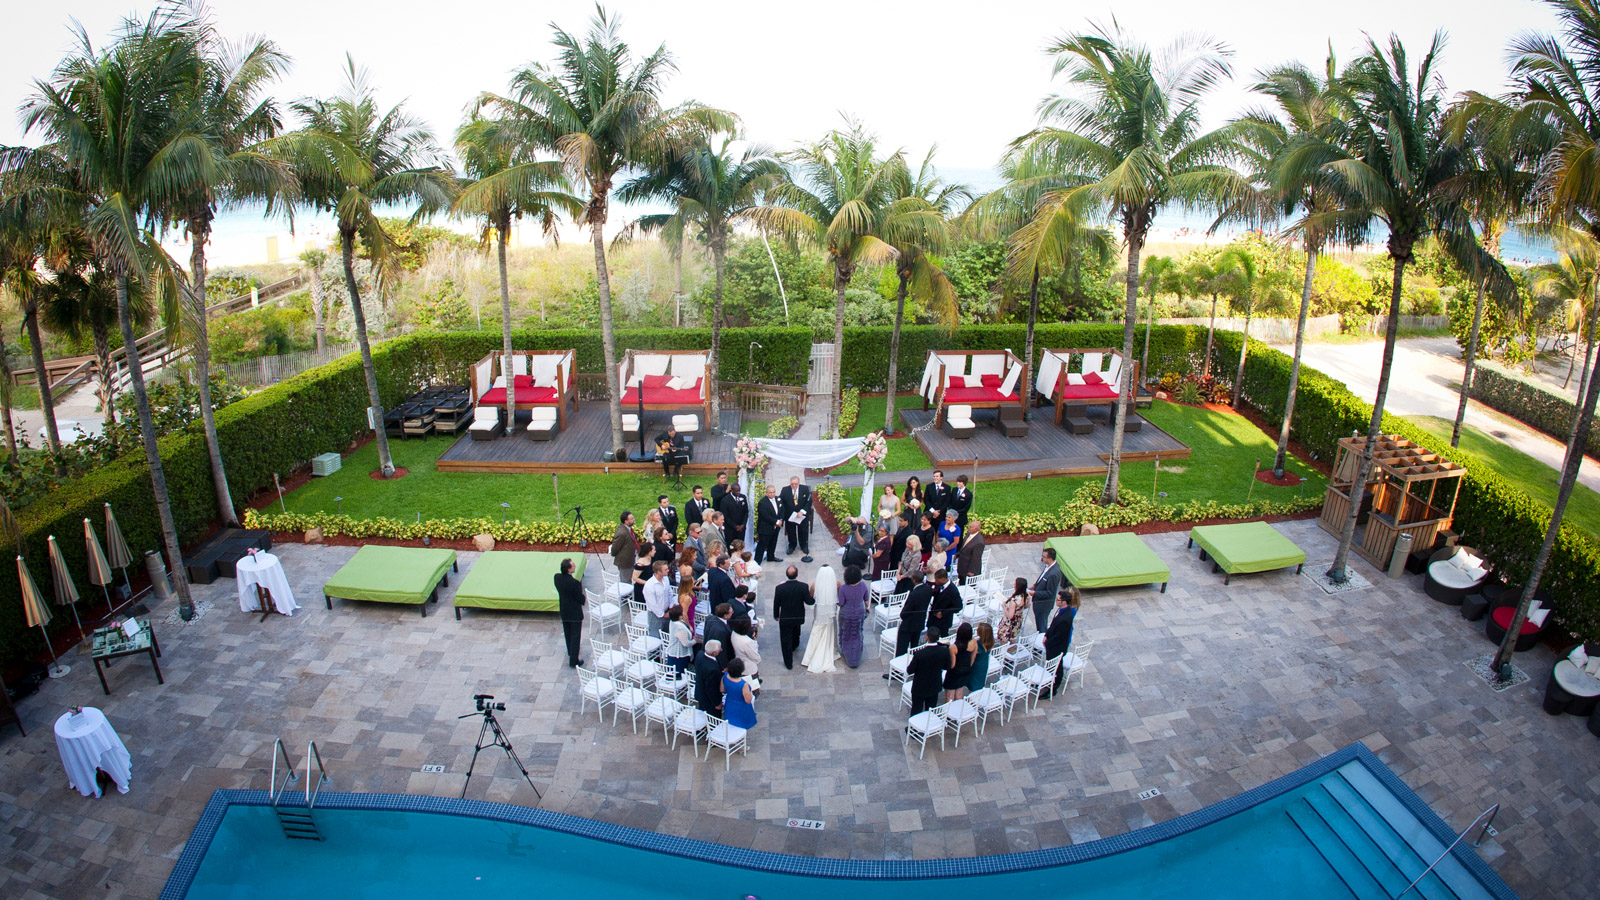 Wedding ceremony by pool under palm trees in south Miami Florida